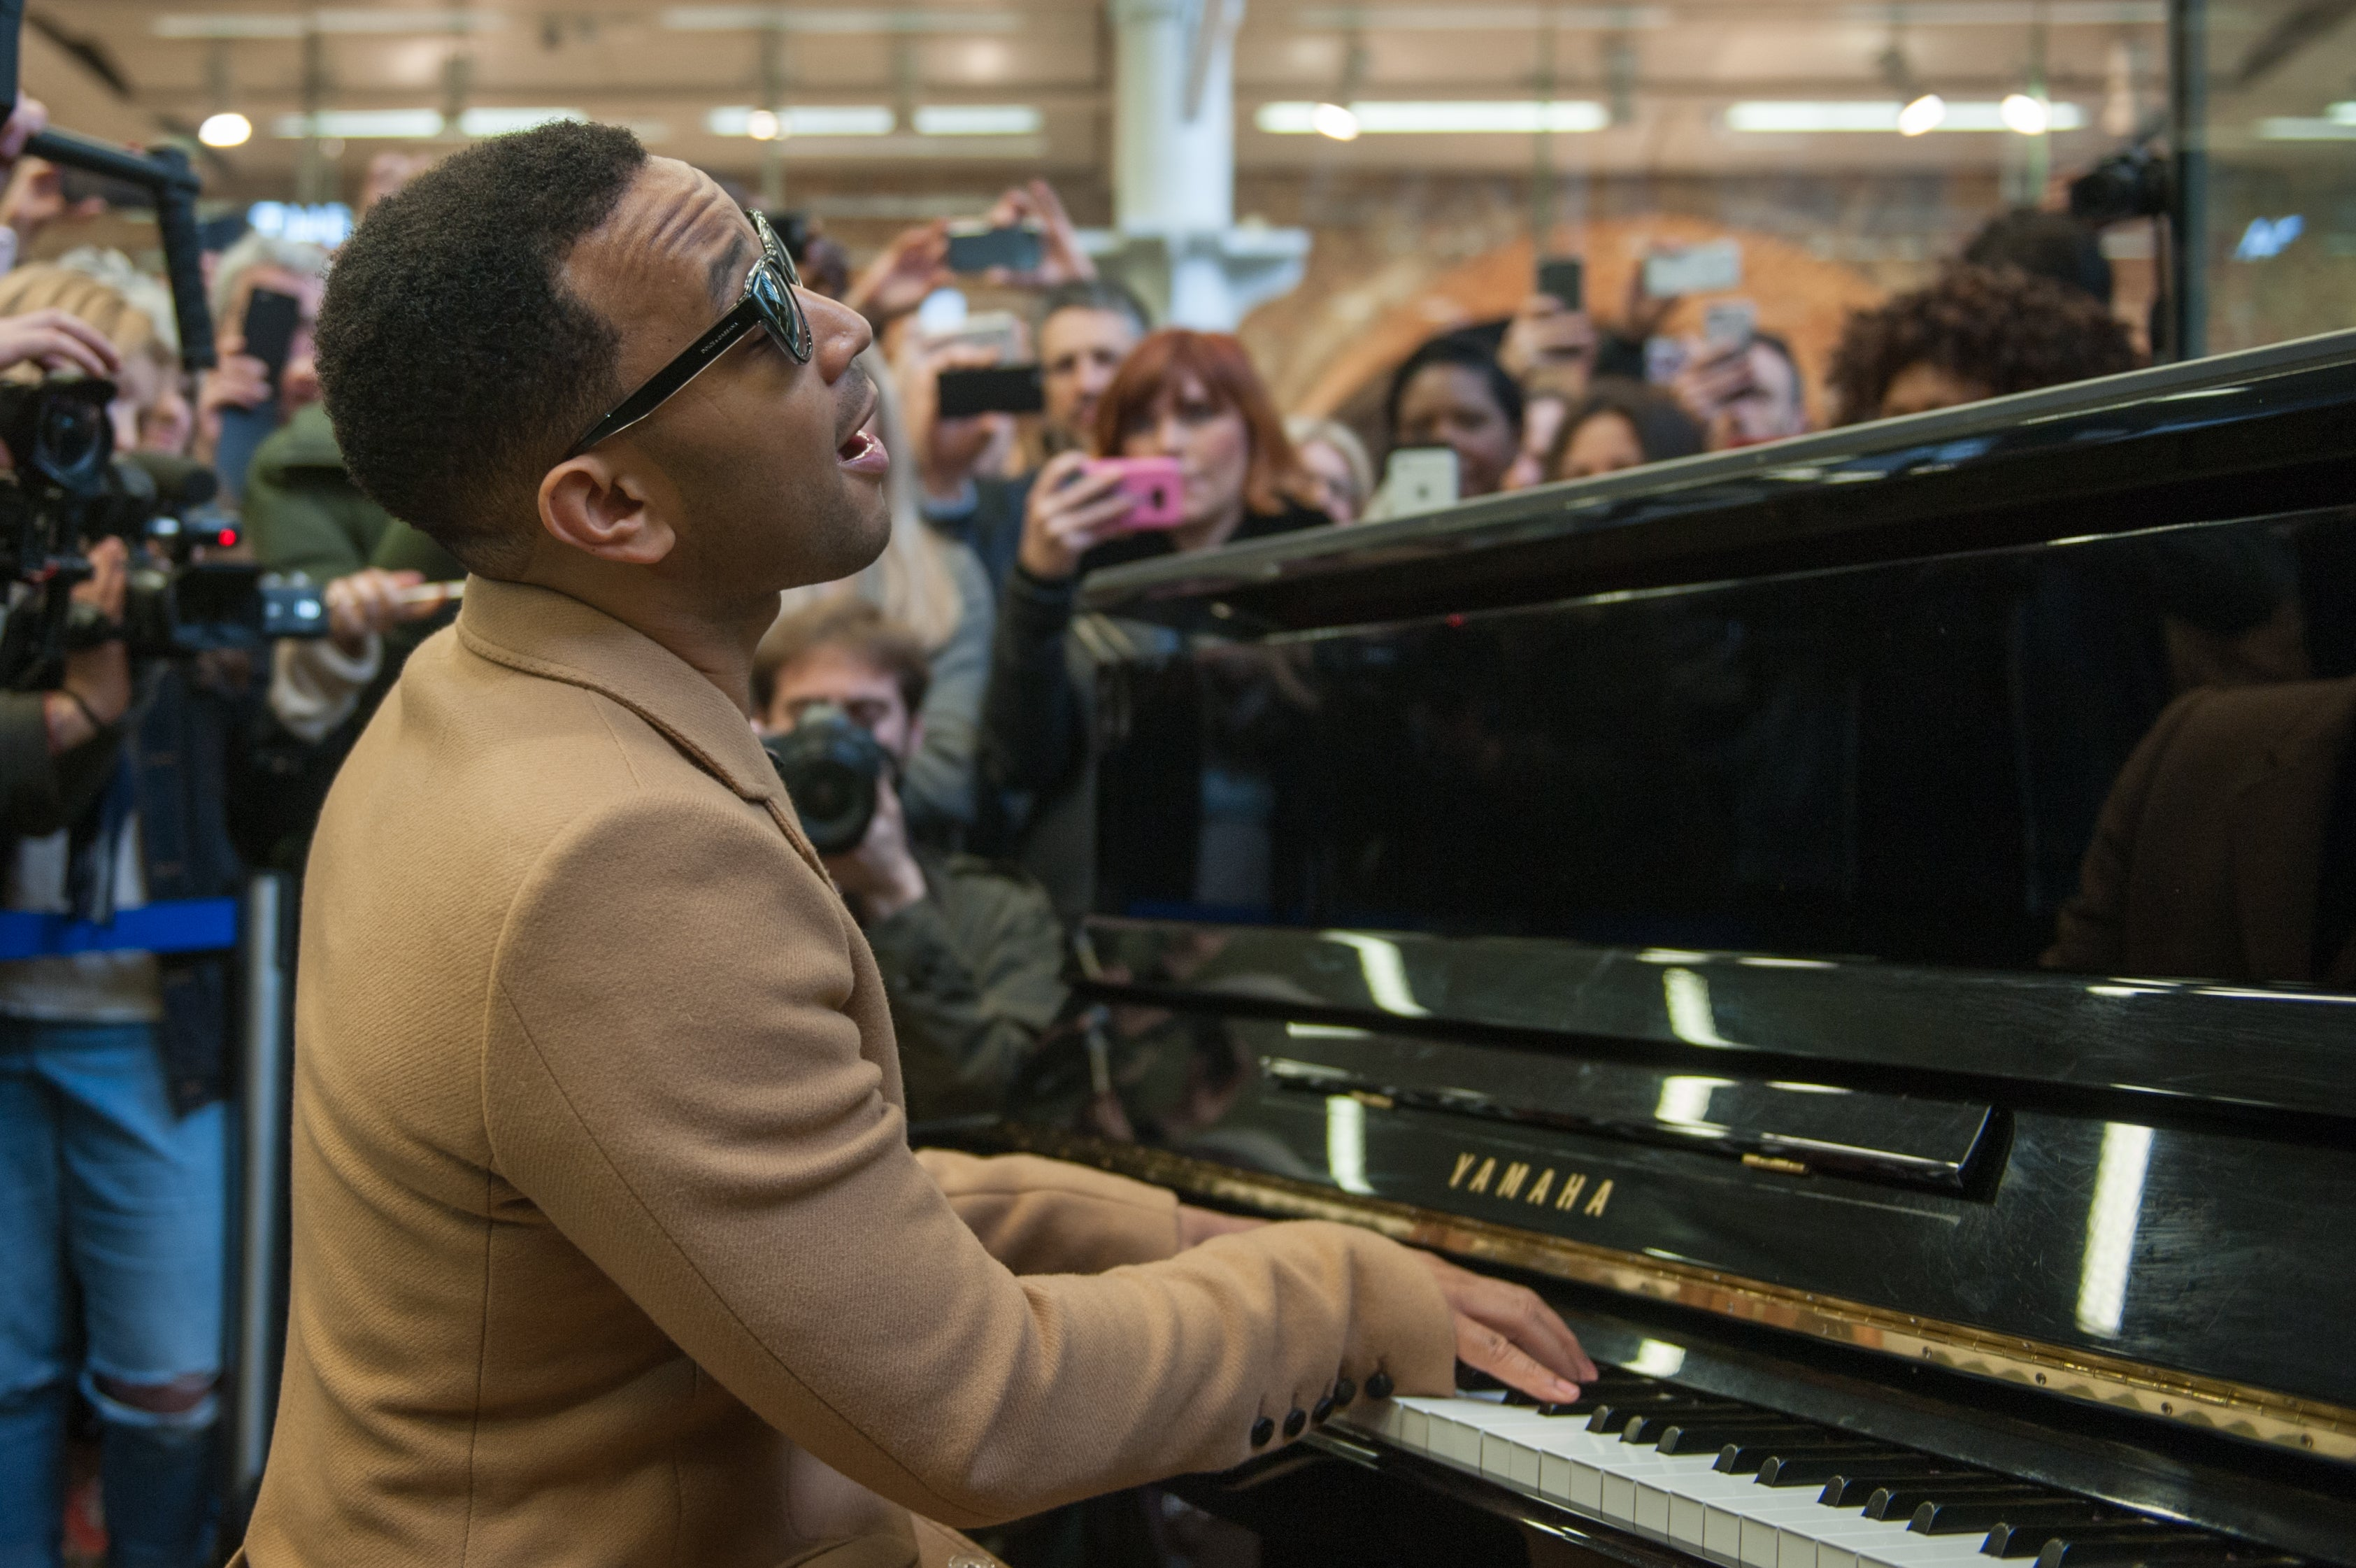 John Legend Turns Up At St Pancras, Drops Bags, Plays Piano, Slays